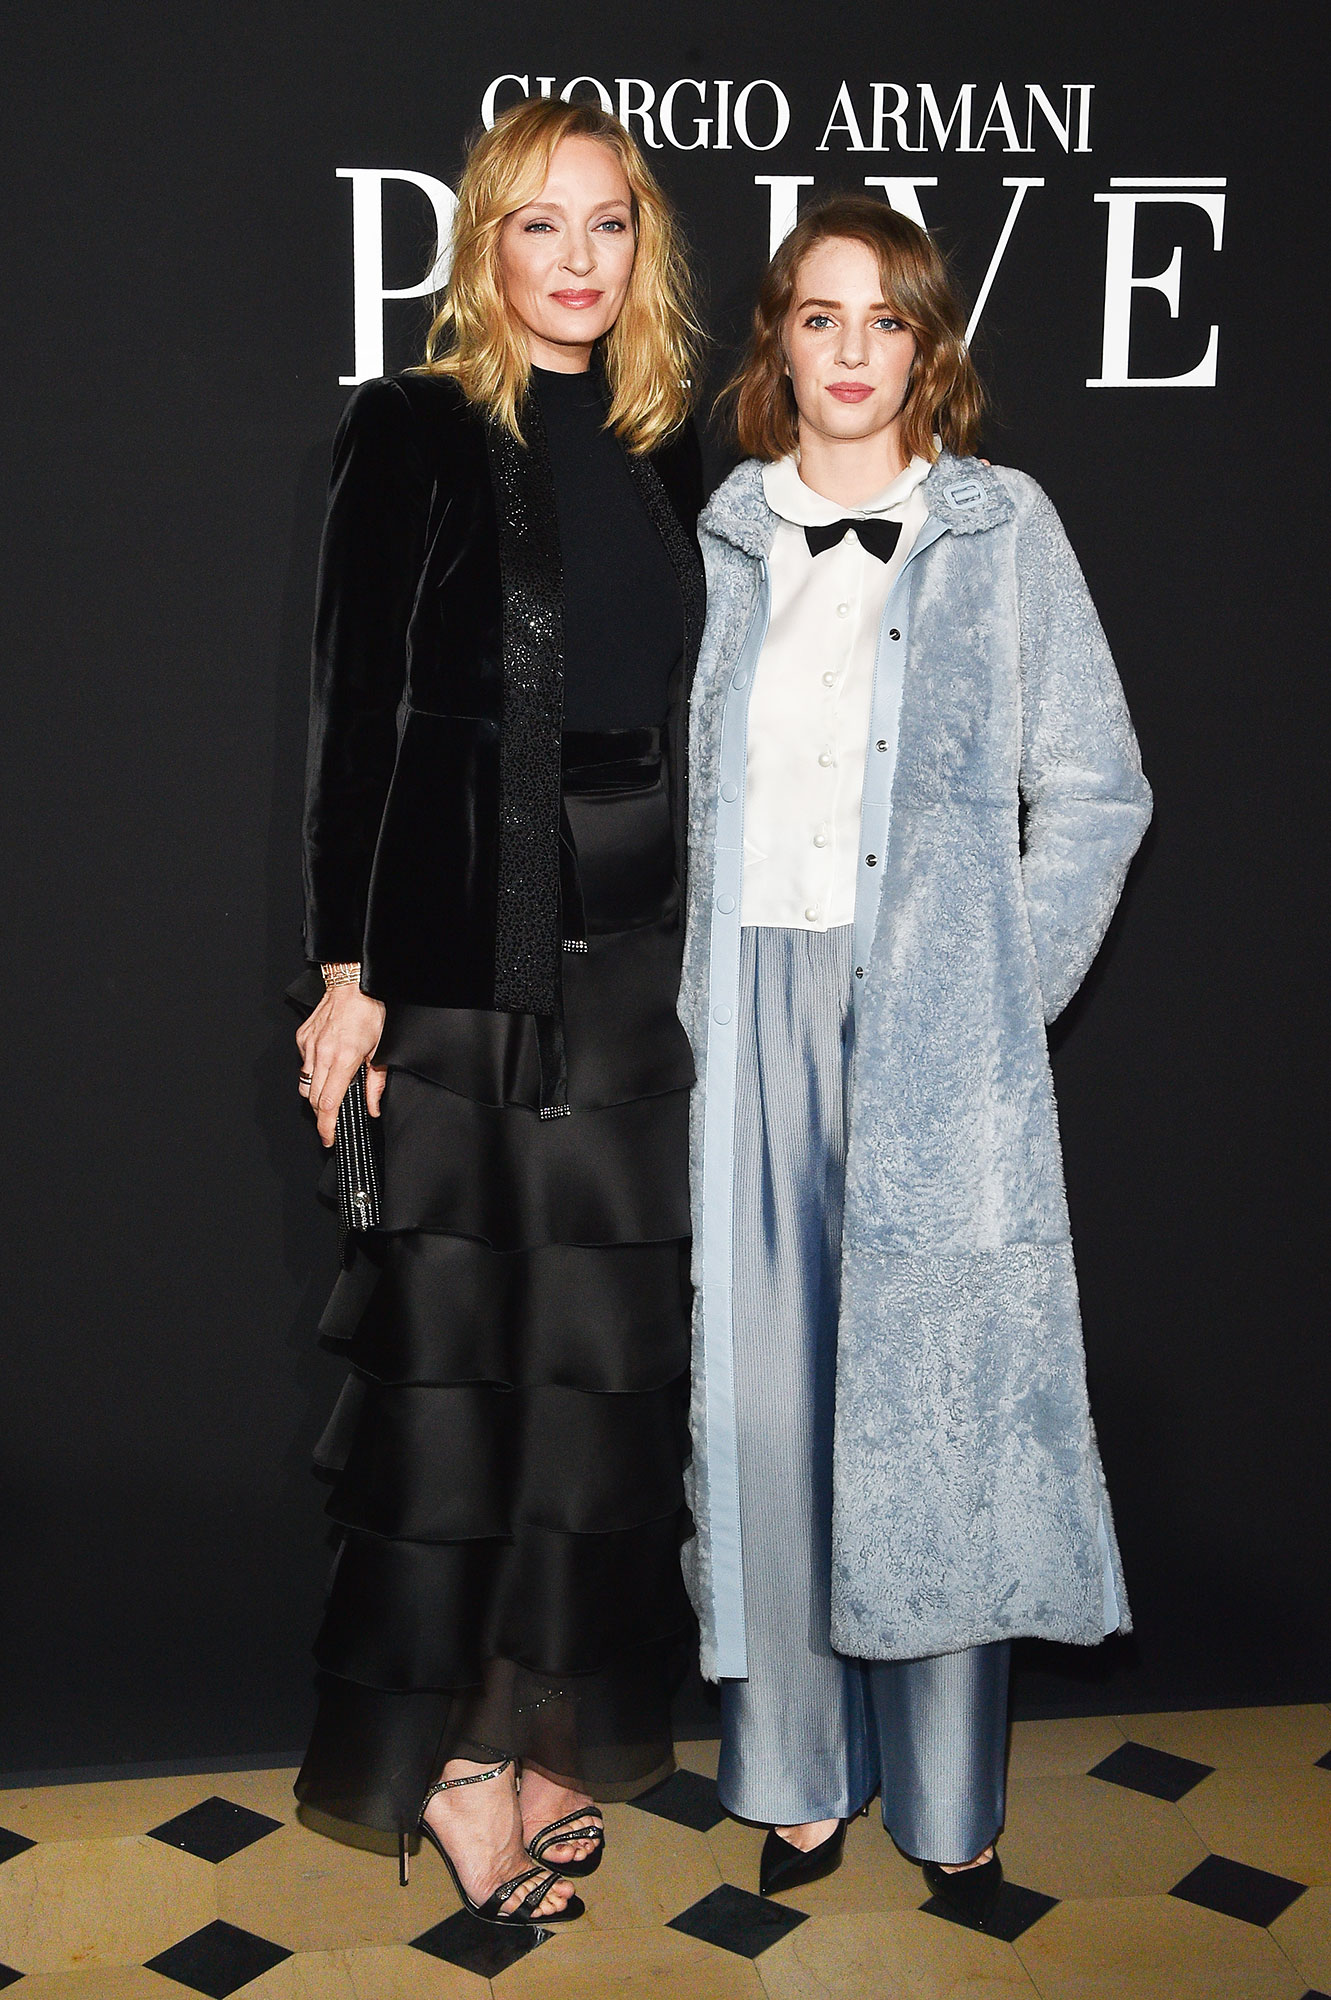 Uma Thurman and her daughter Maya Hawke - Like mother, like daughter! The duo made the front row a family affair at Giorgio Armani Prive on Tuesday, January 22, in stylish separates.